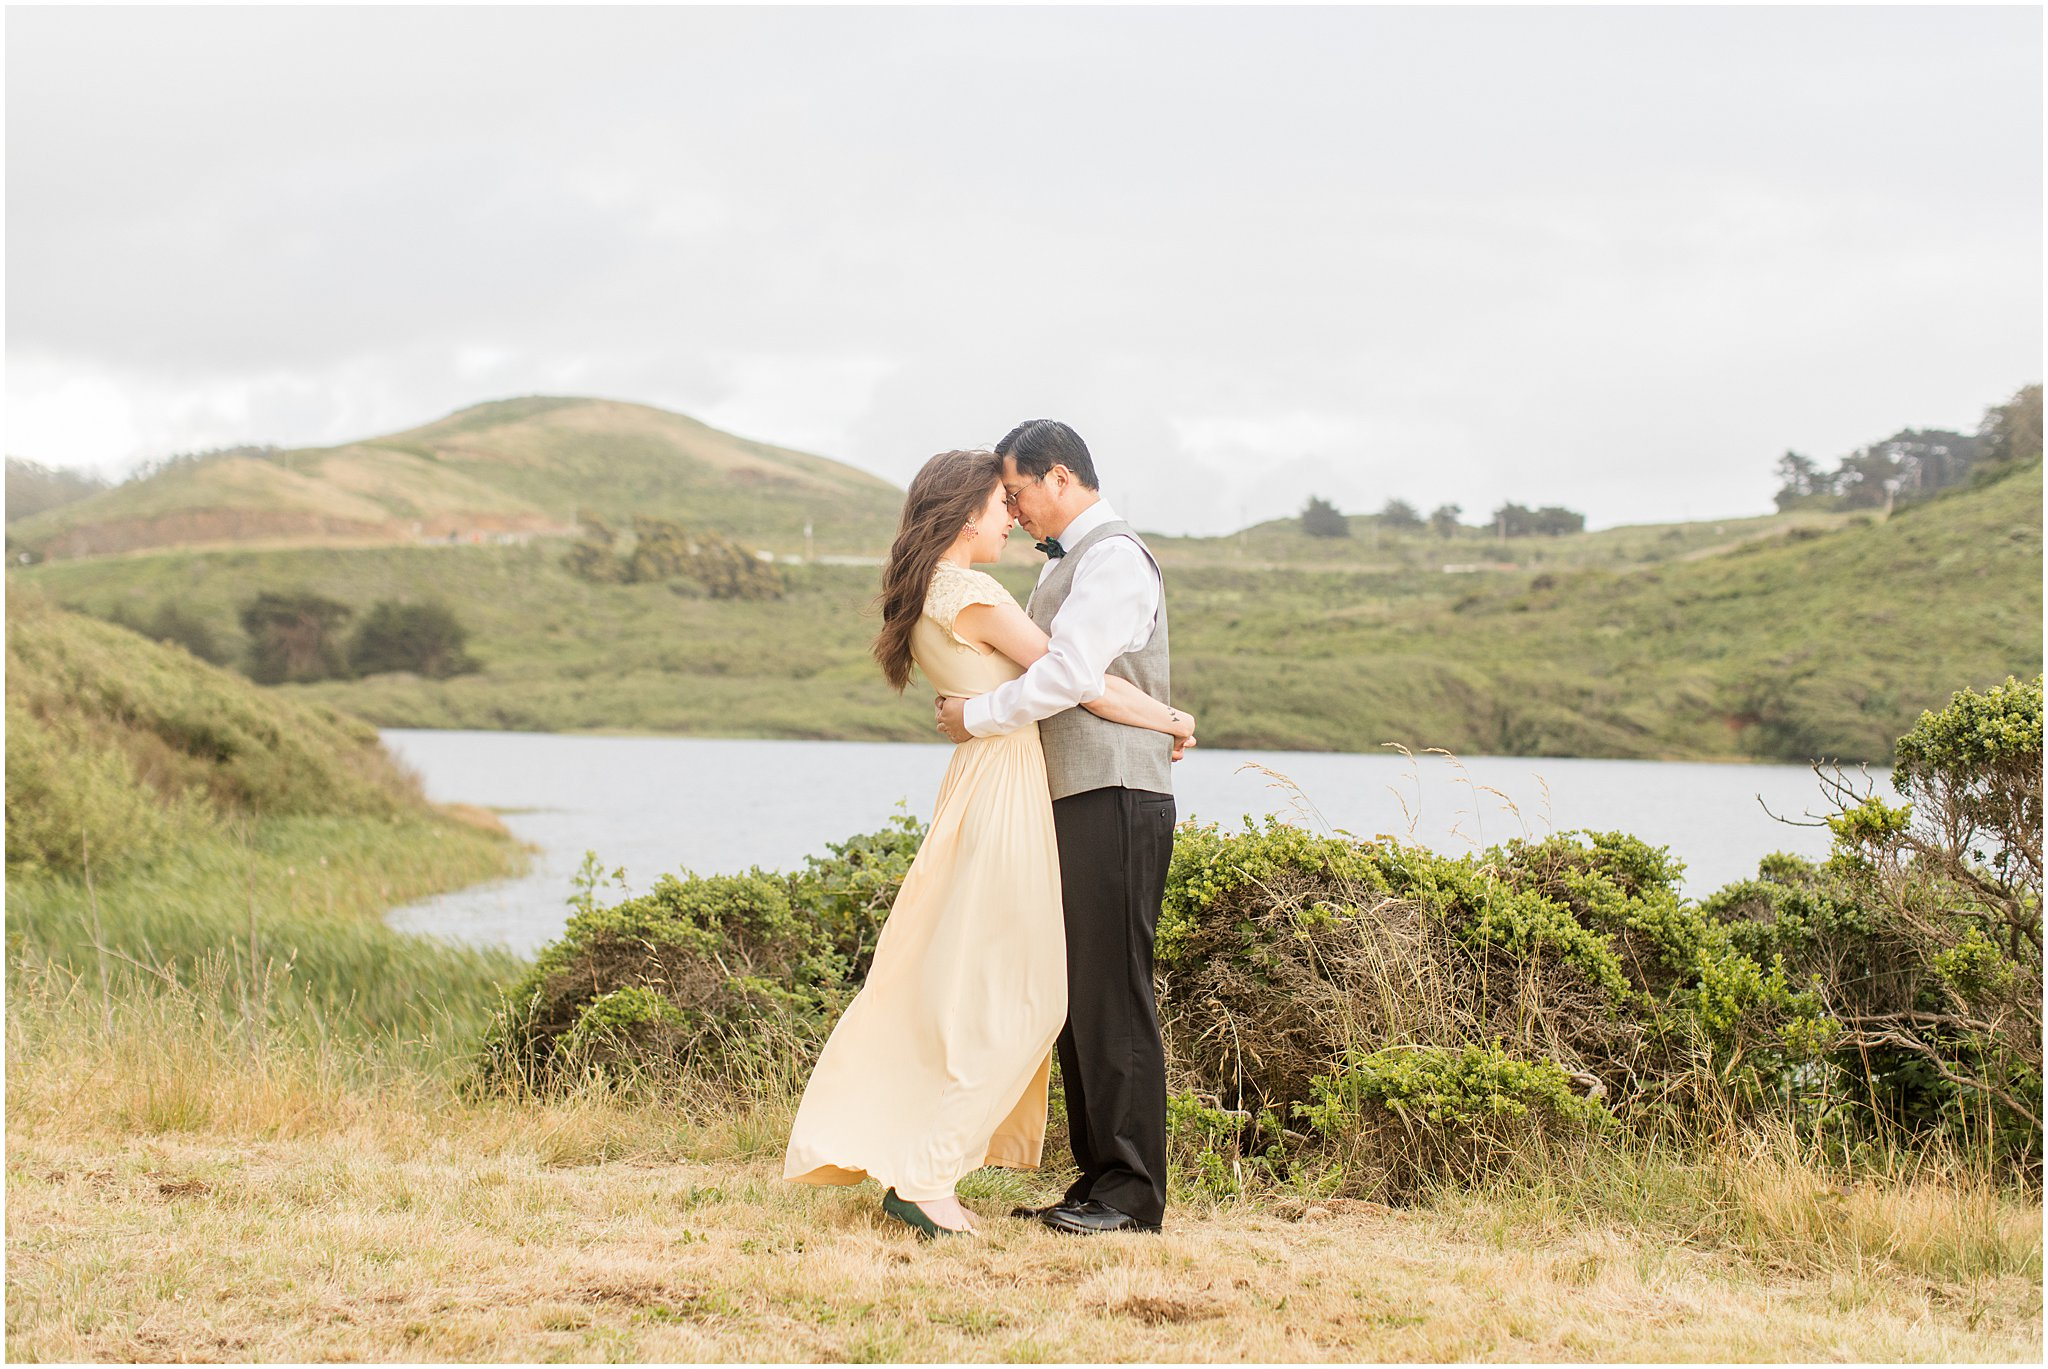 2019 marin headlands san francisco engagement session bay area wedding photographer_0003.jpg